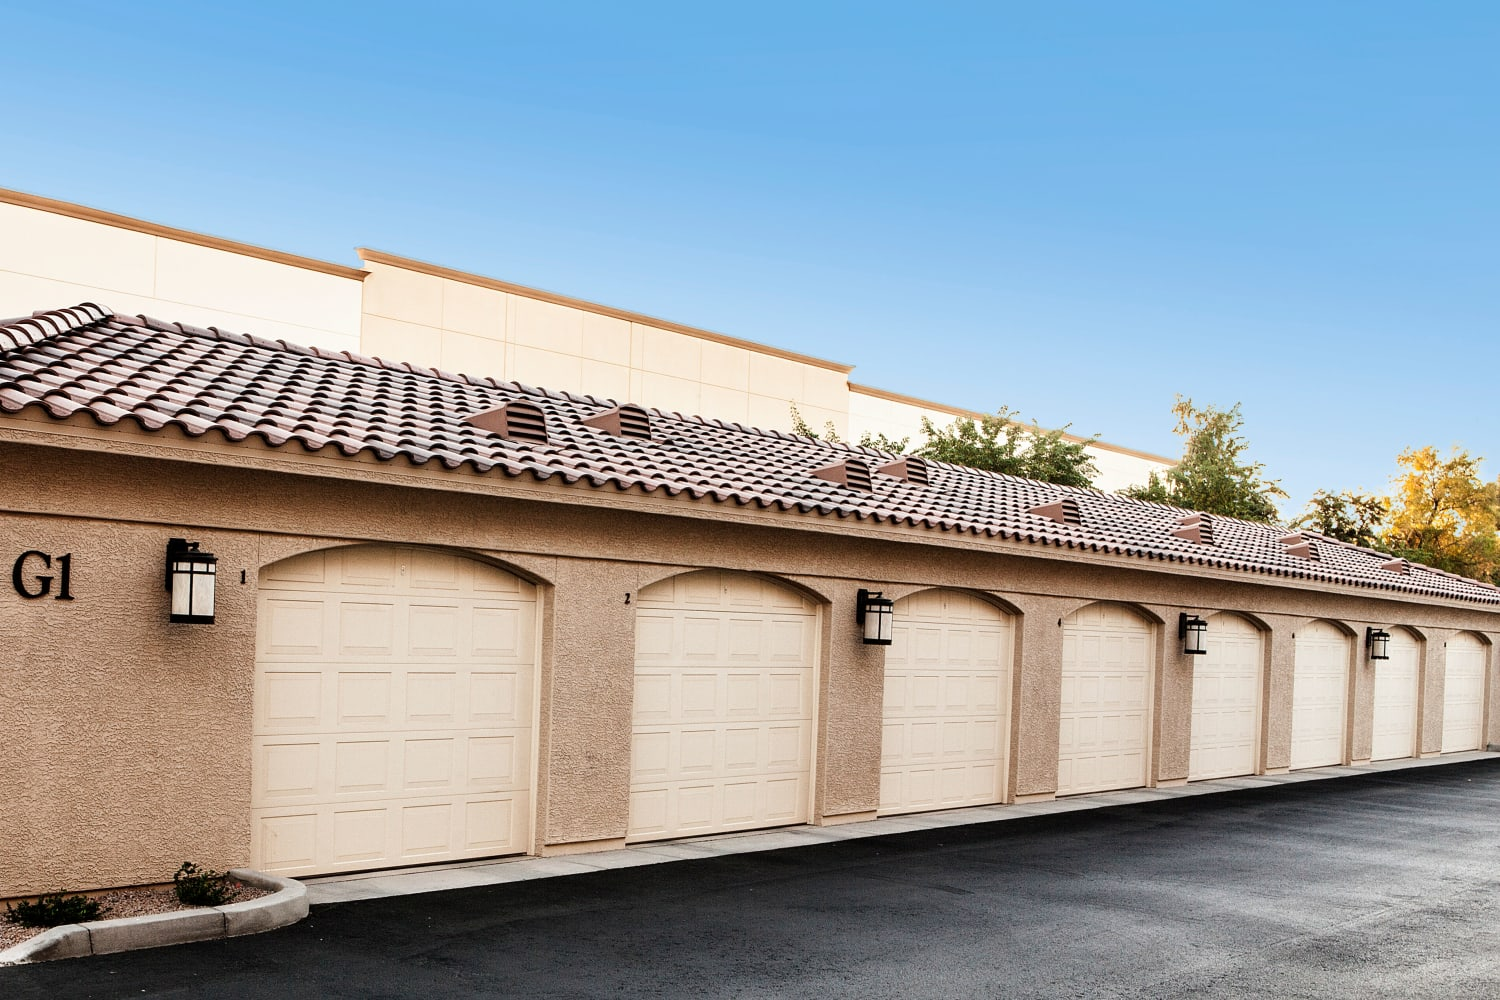 San Marquis in Tempe, Arizona, offers garages for your vehicles